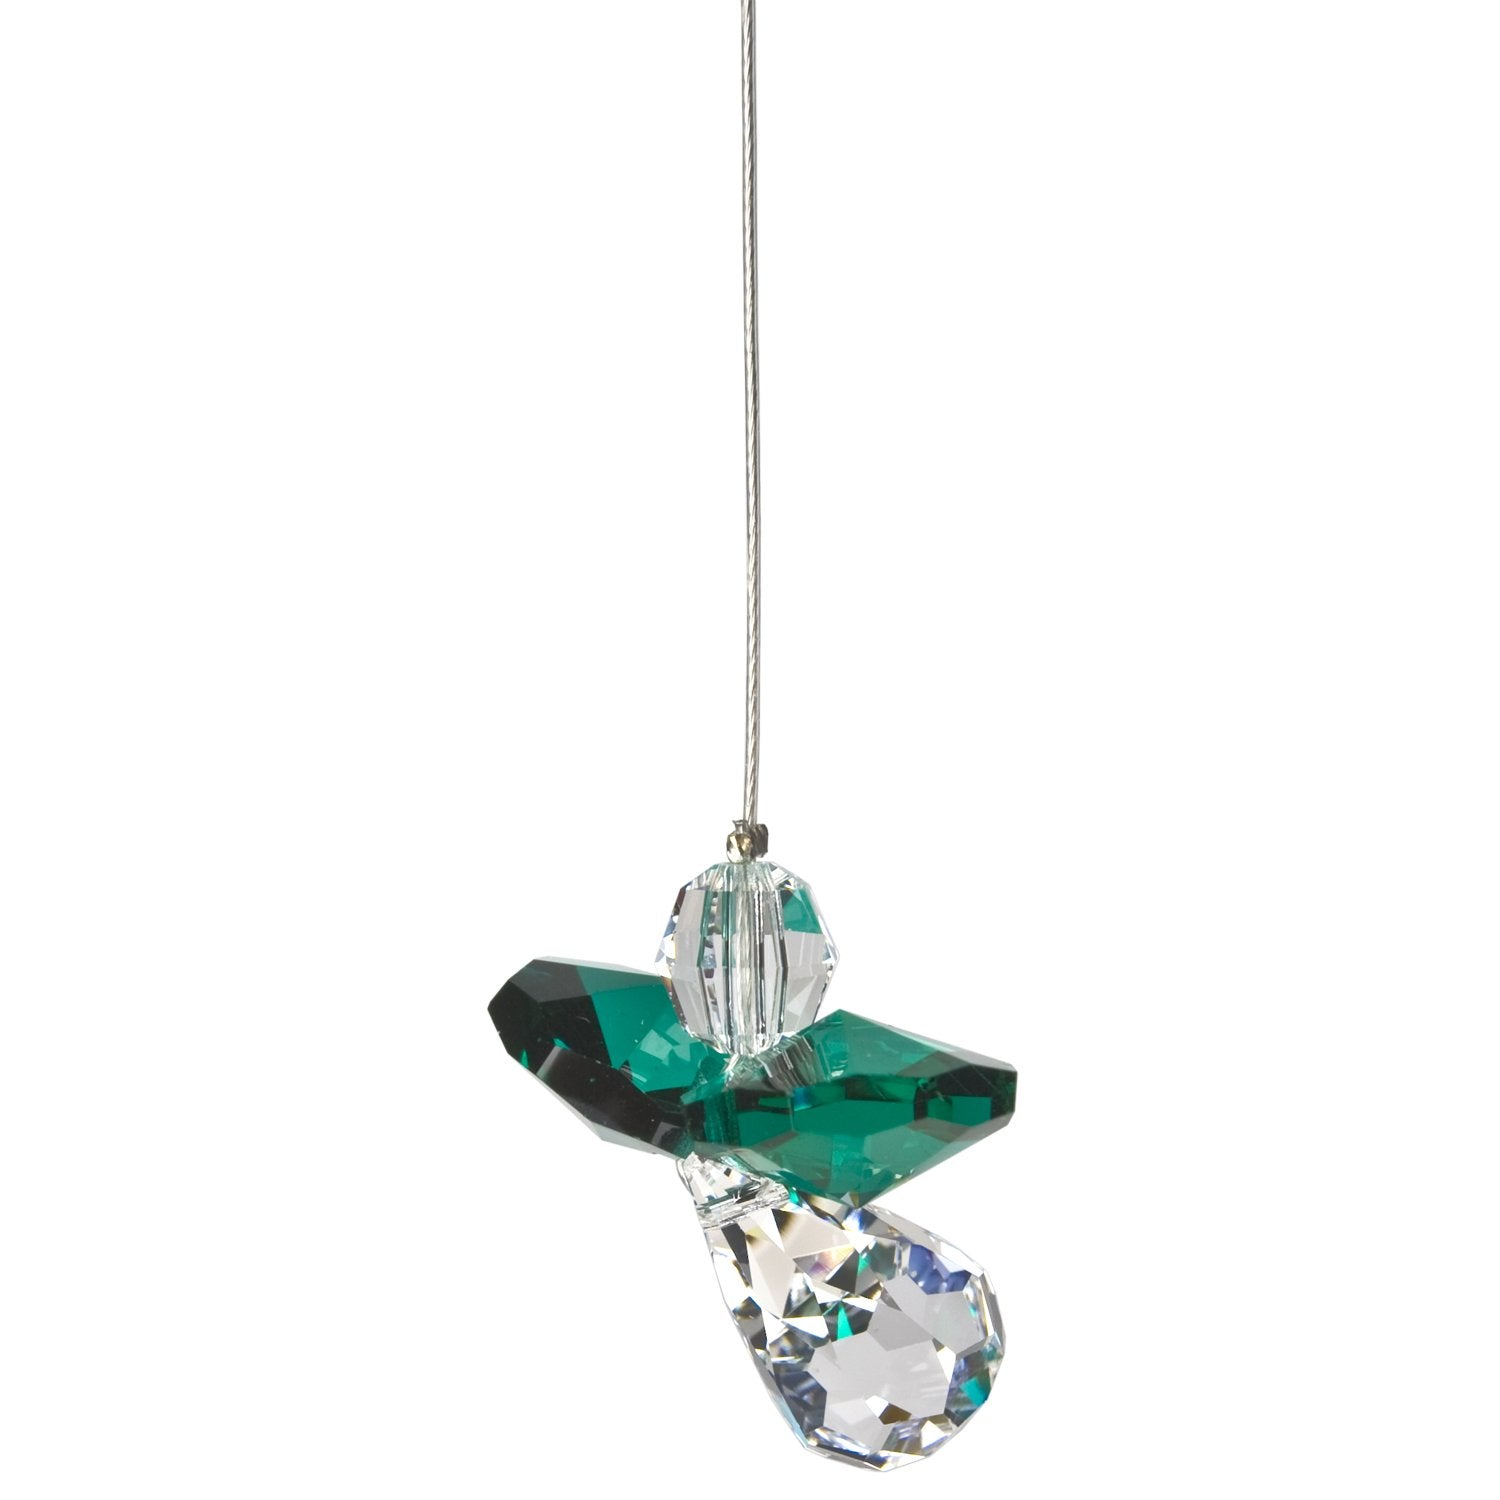 Crystal Guardian Angel Suncatcher - Emerald (May) alternate product image